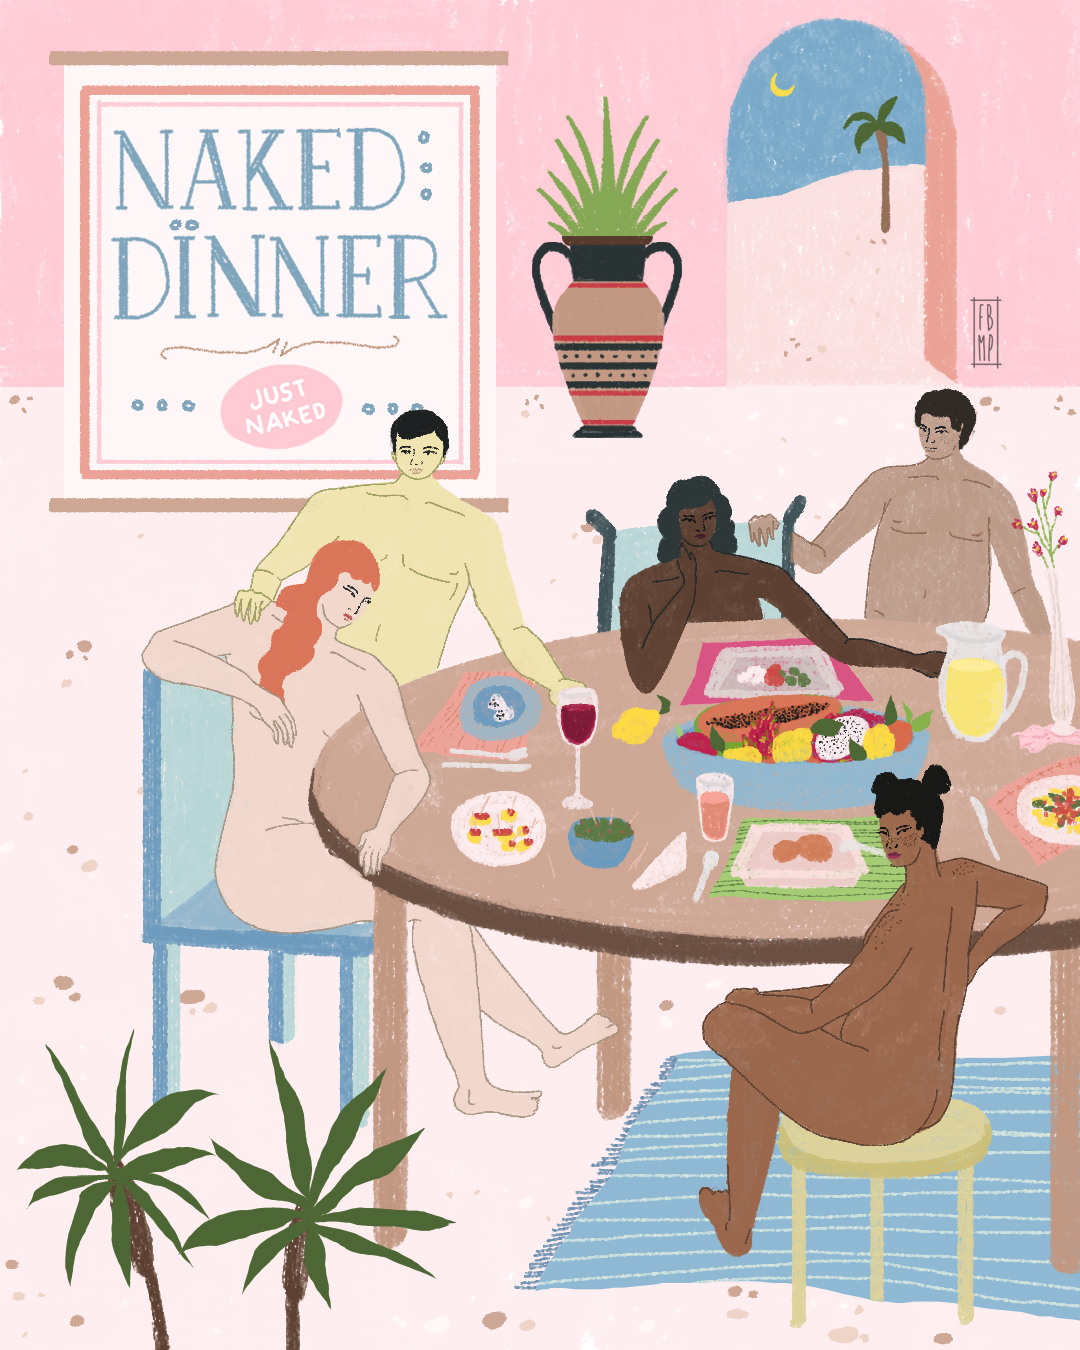 naked dinner nyc just naked